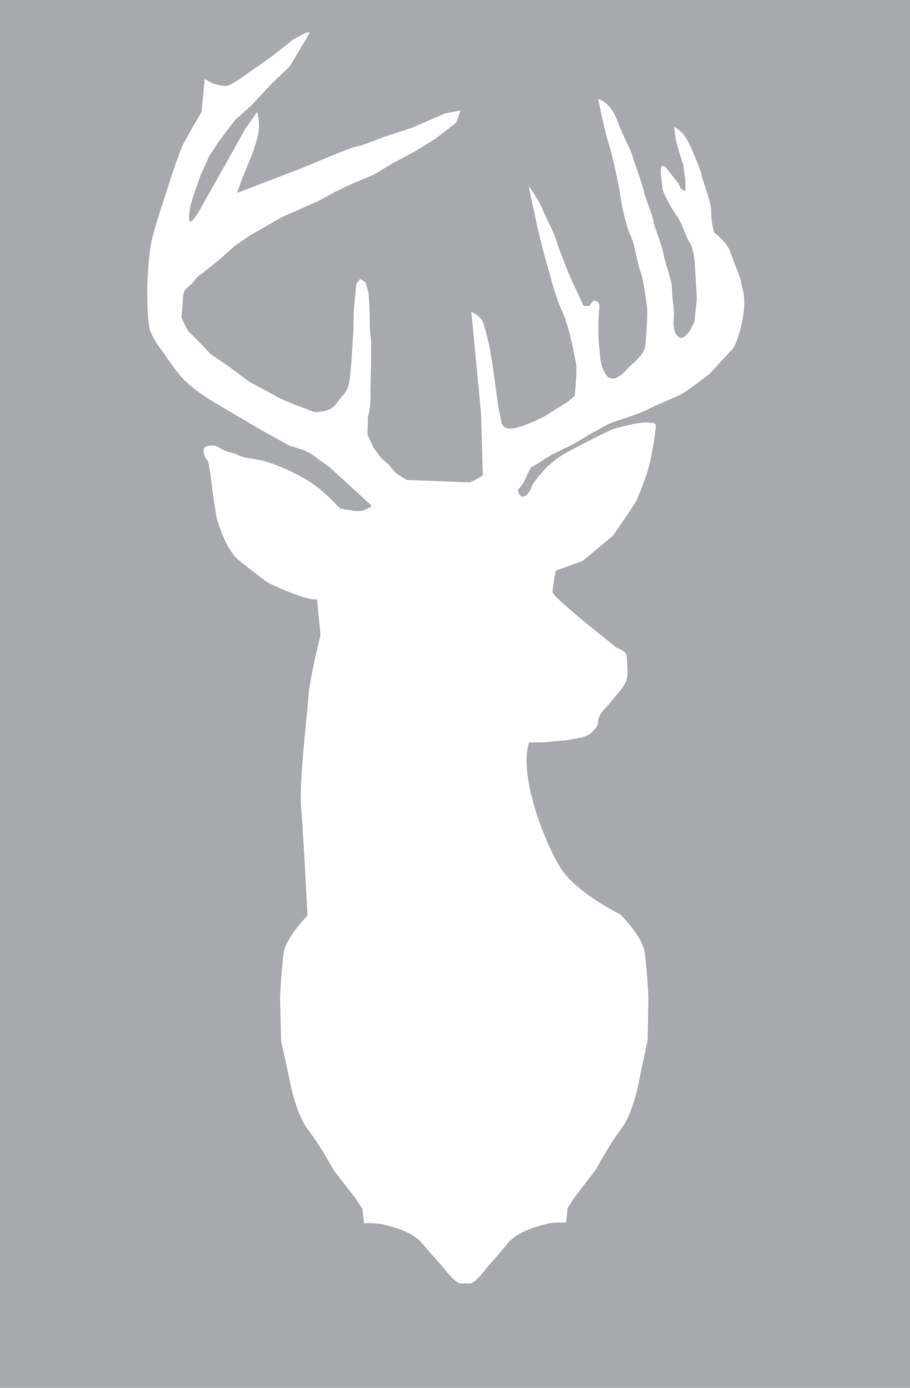 View Download Or Print Deer Silhouette Png Deer Head Silhouette Deer Silhouette Silhouette Cameo Projects